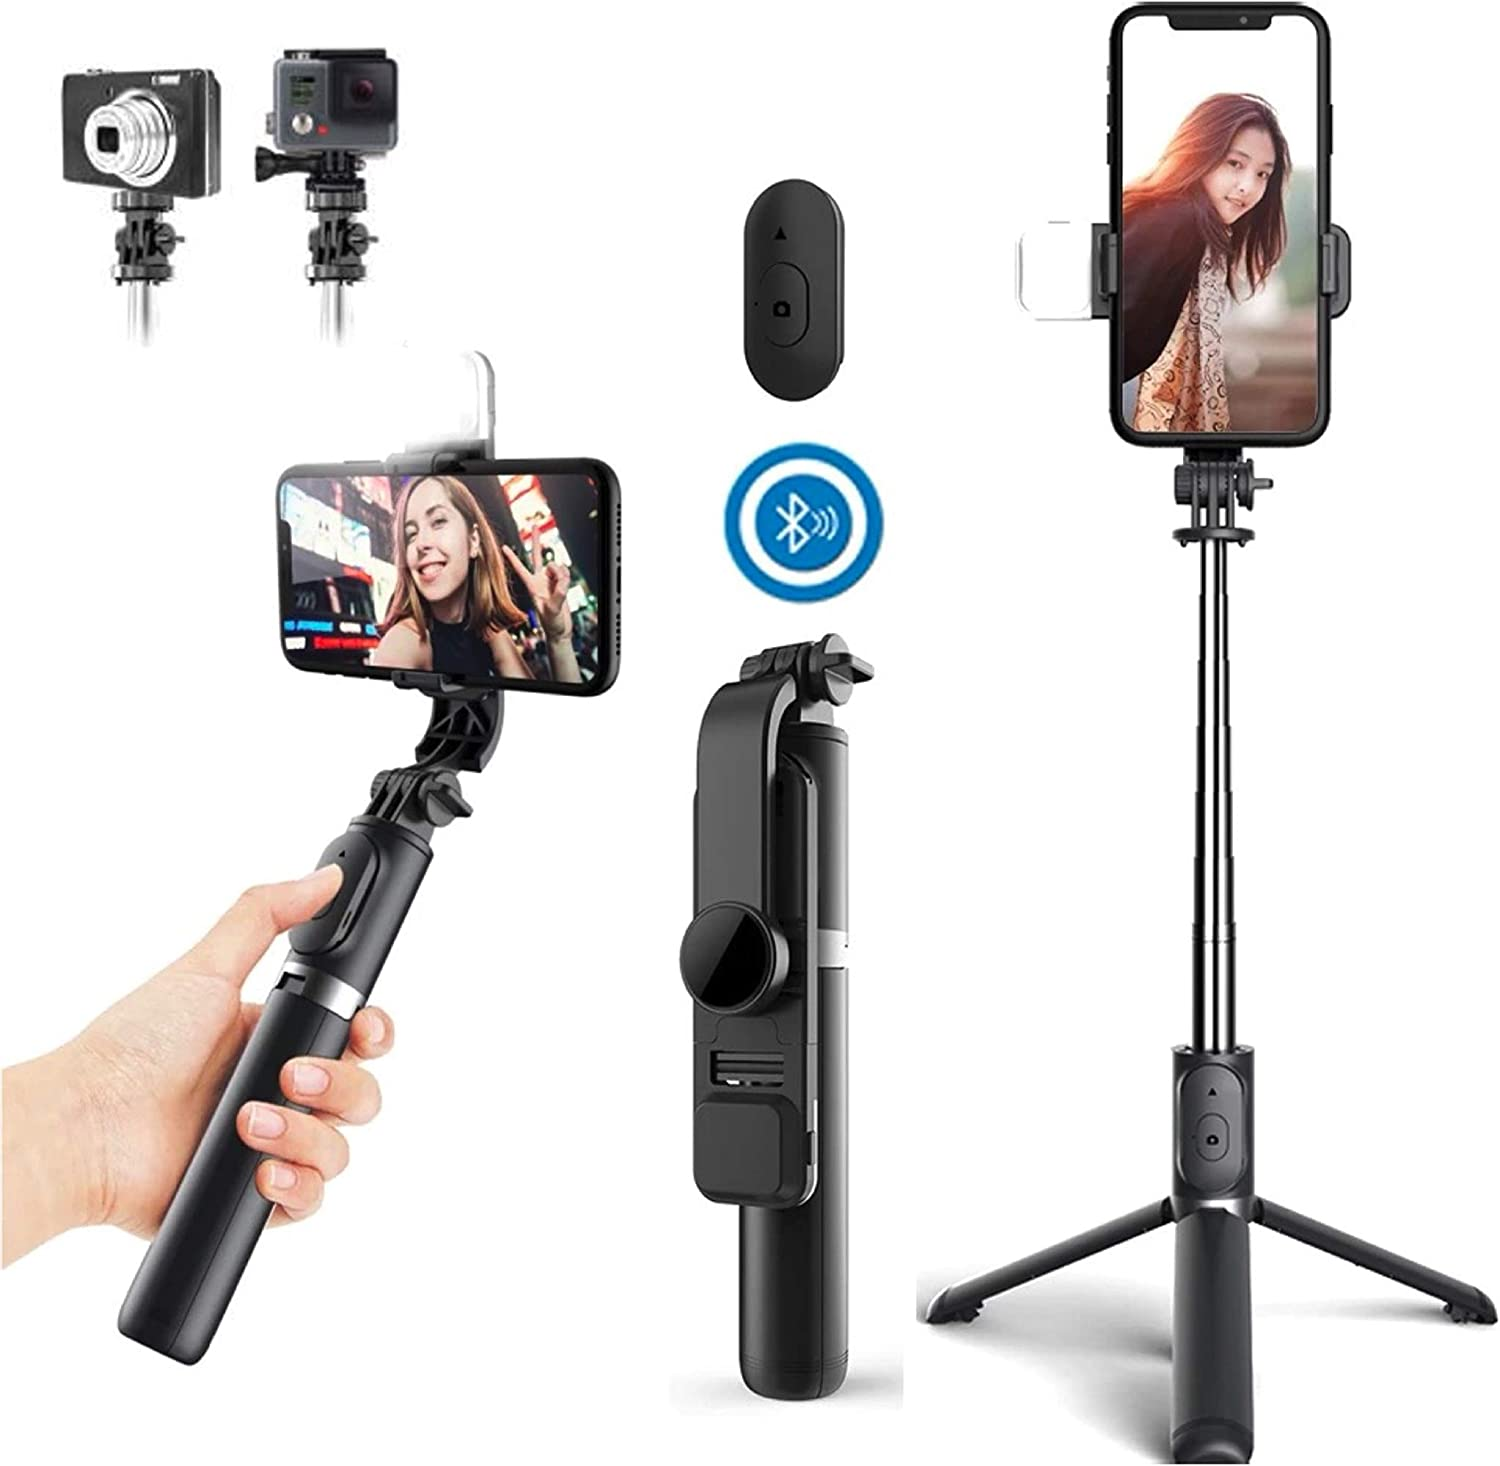 All Android K/éviji 4 in 1 Selfie Stick Cameras GoPro and More 40 360 Degrees Extendable Heavy Weight Selfie Stick Tripod with Wireless Remote Shutter Compatible with All iPhones